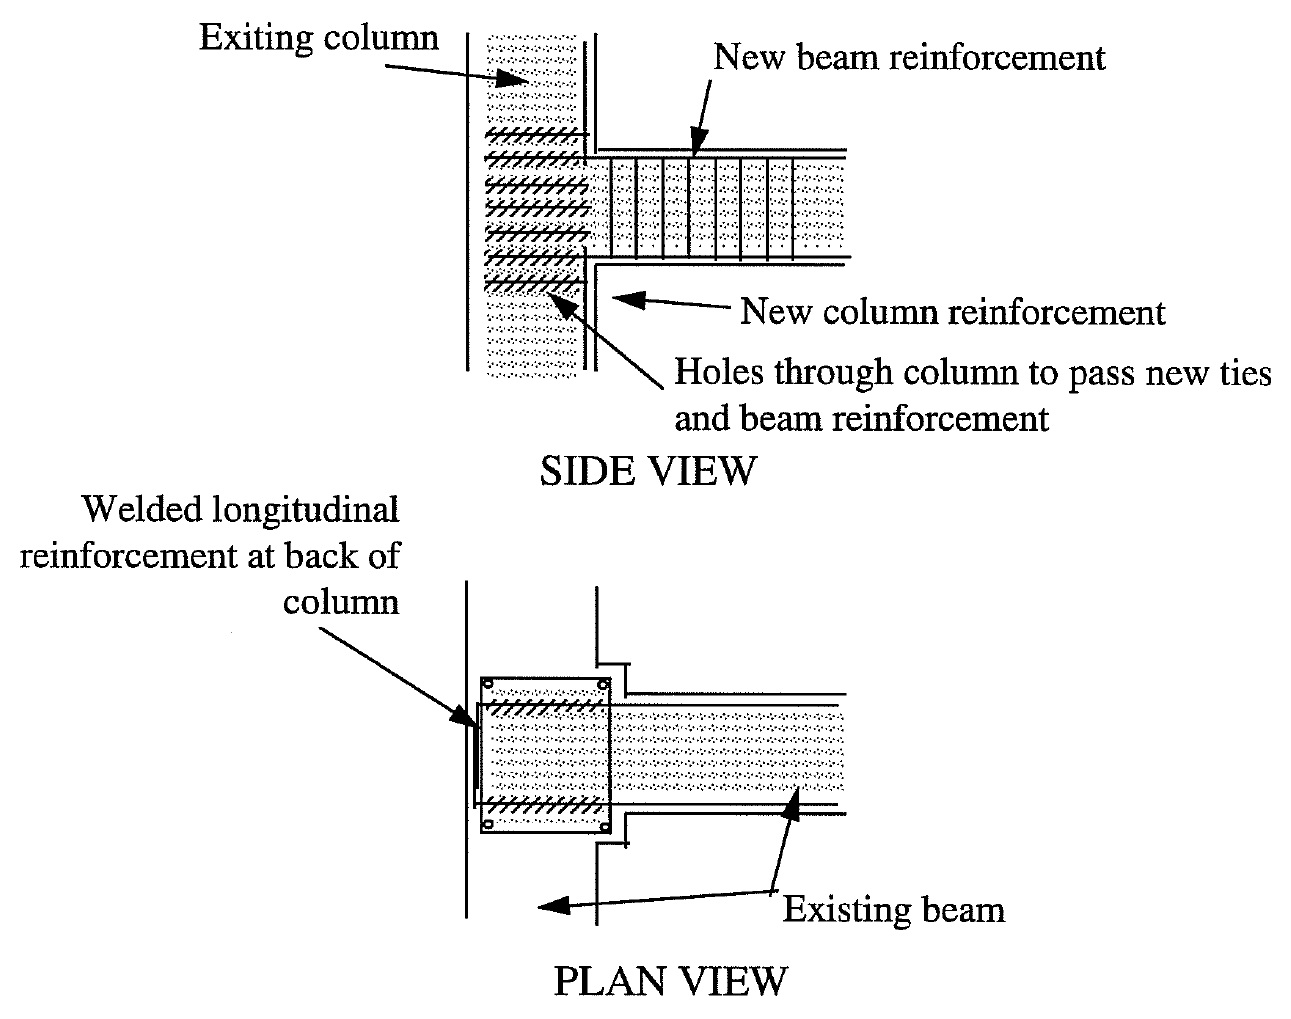 Beam anchorage to edge column (Retrieved from Aguilar et al., 1996).